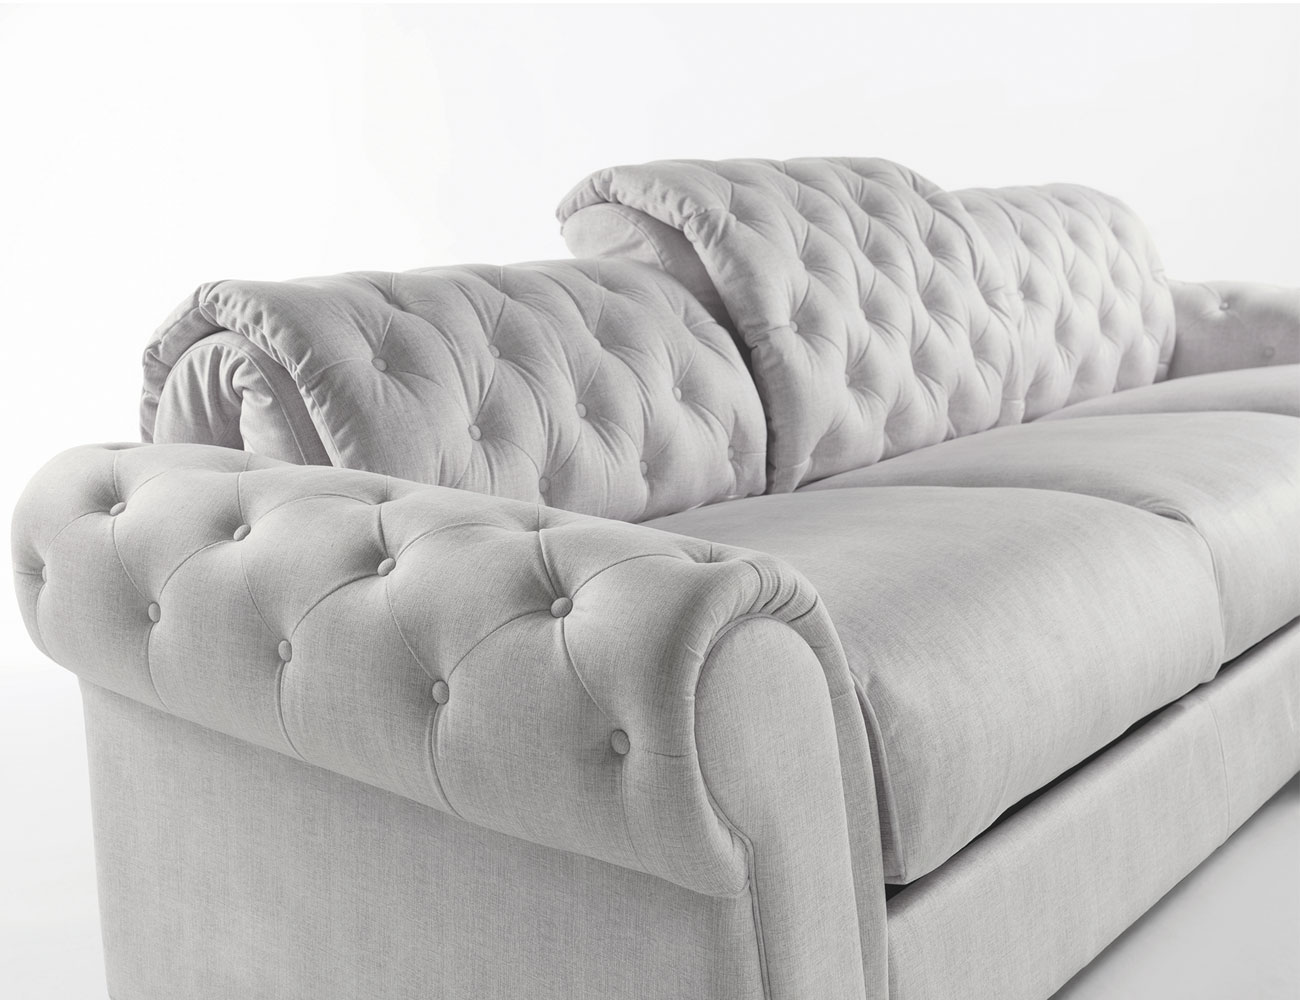 Sofa chaiselongue gran lujo decorativo capitone blanco tela 122